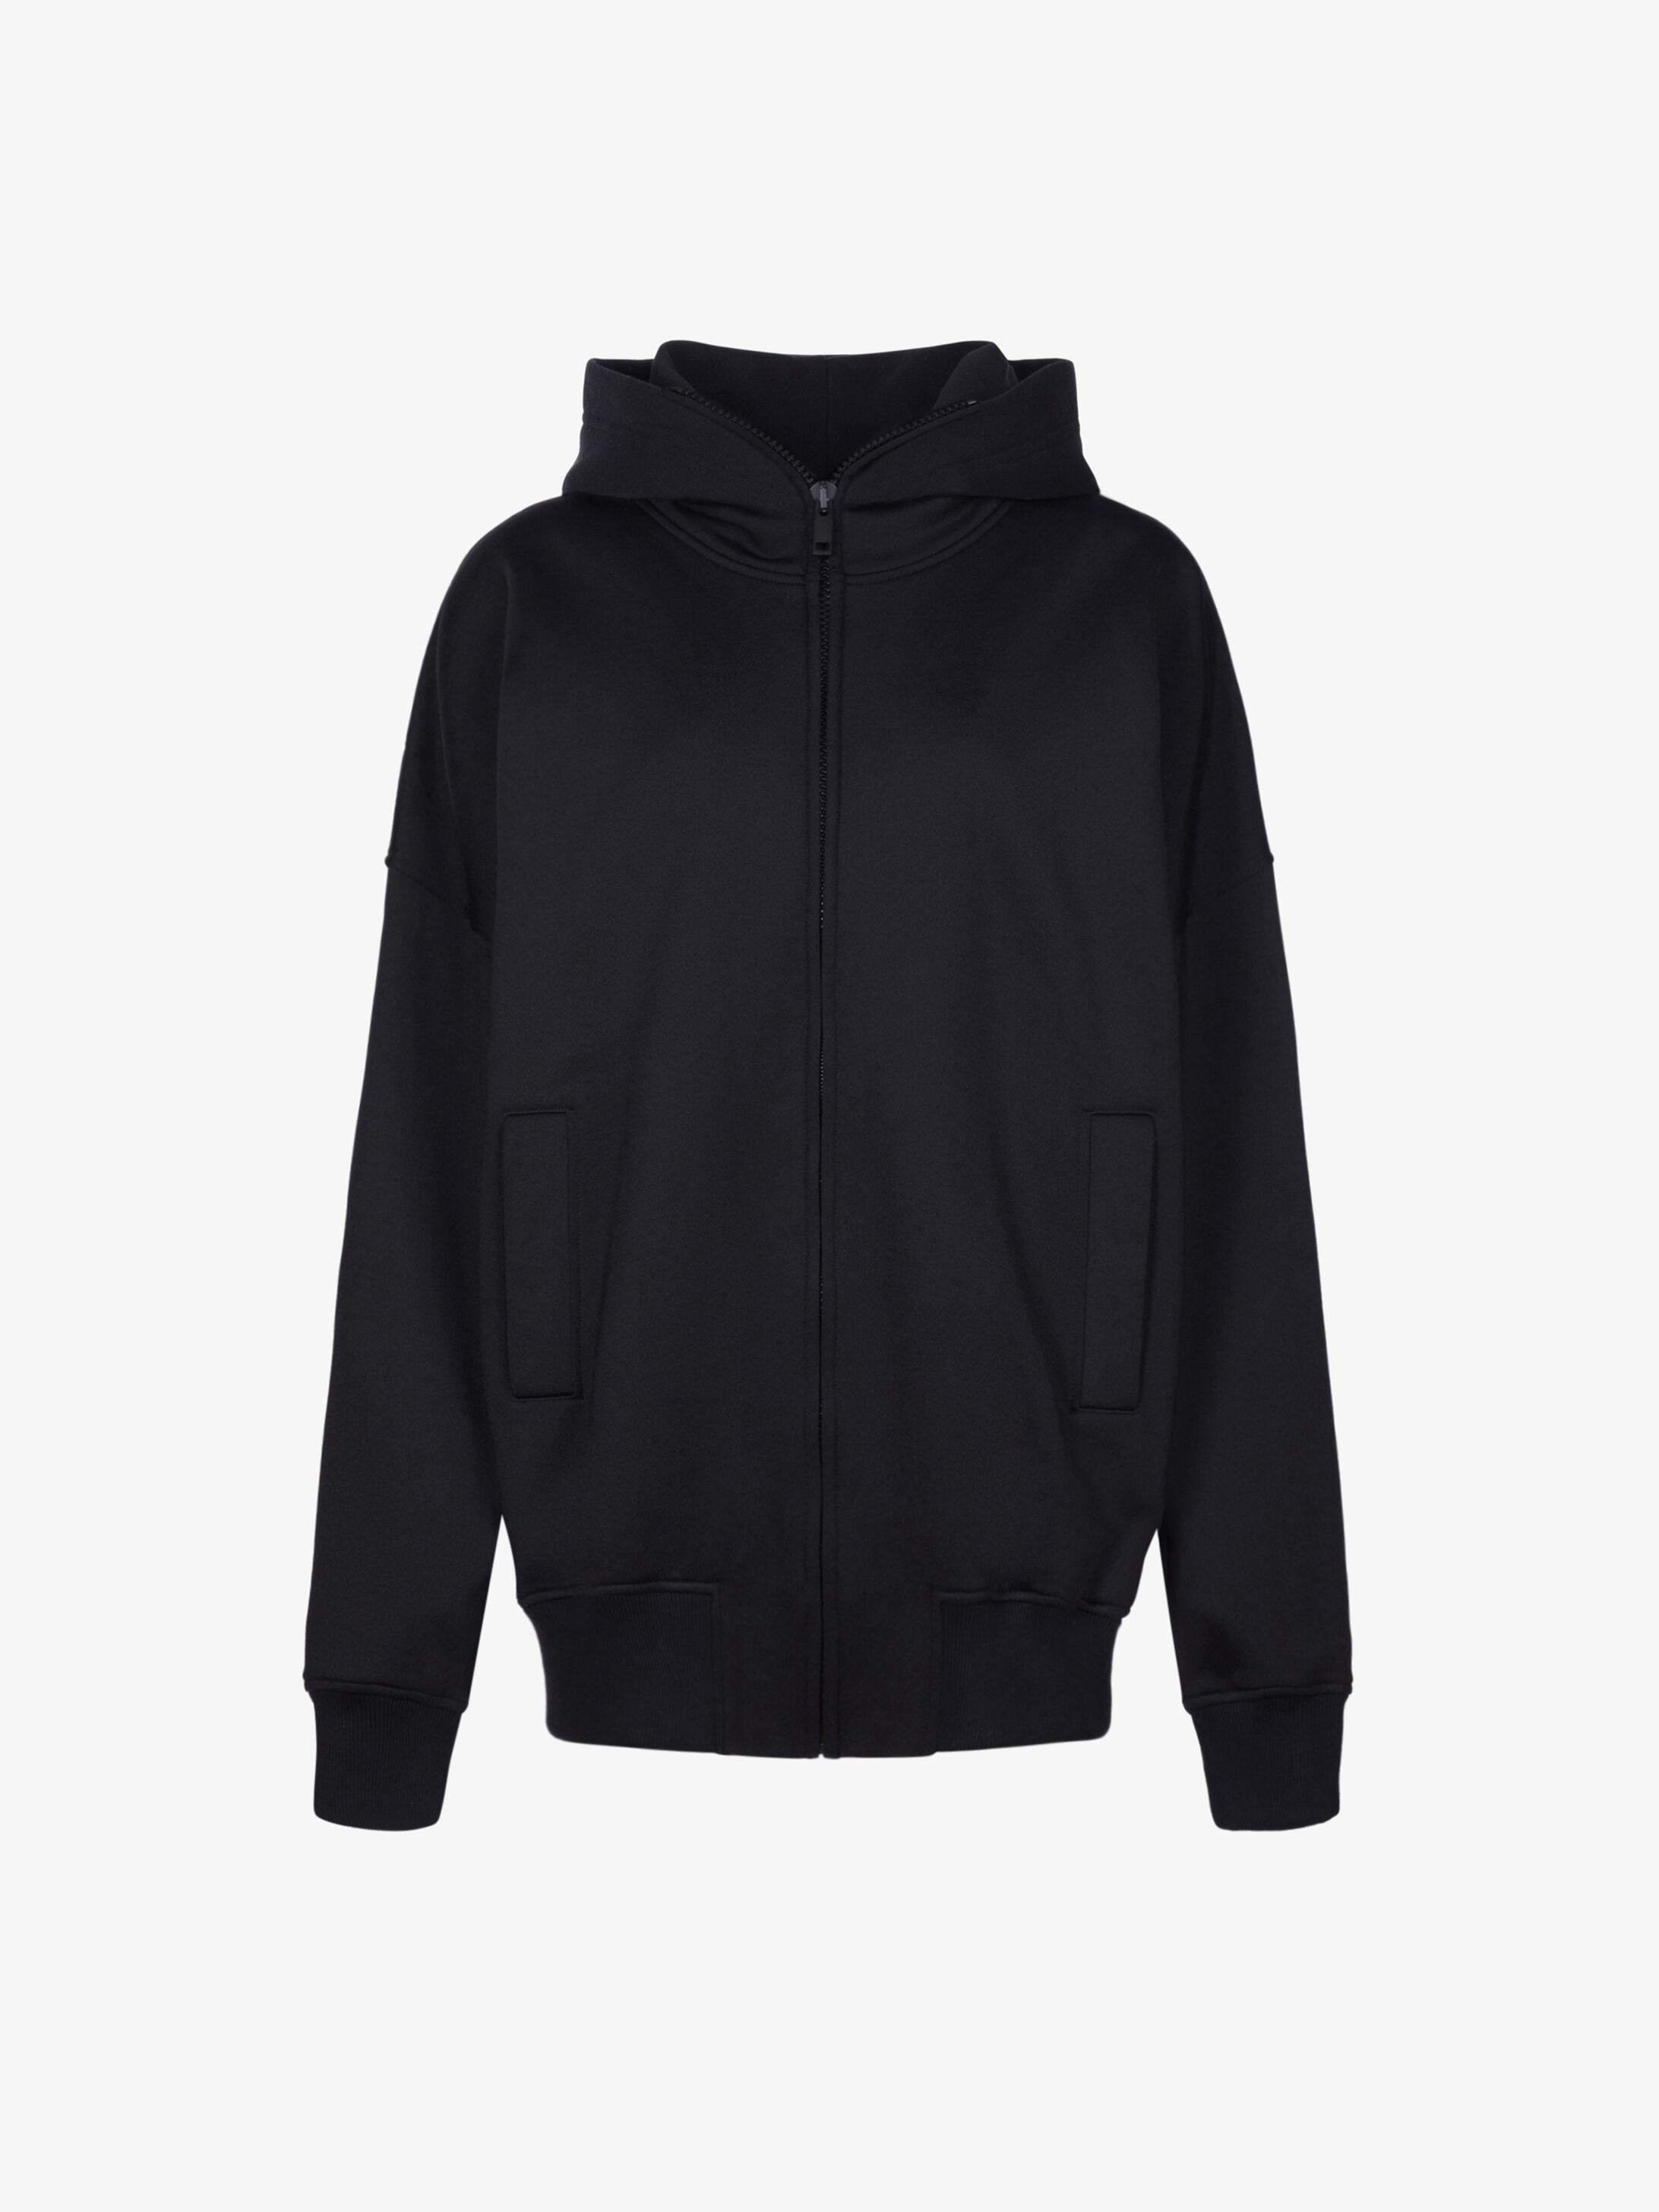 6677b8692 Women's Sweatshirts collection by Givenchy. | GIVENCHY Paris